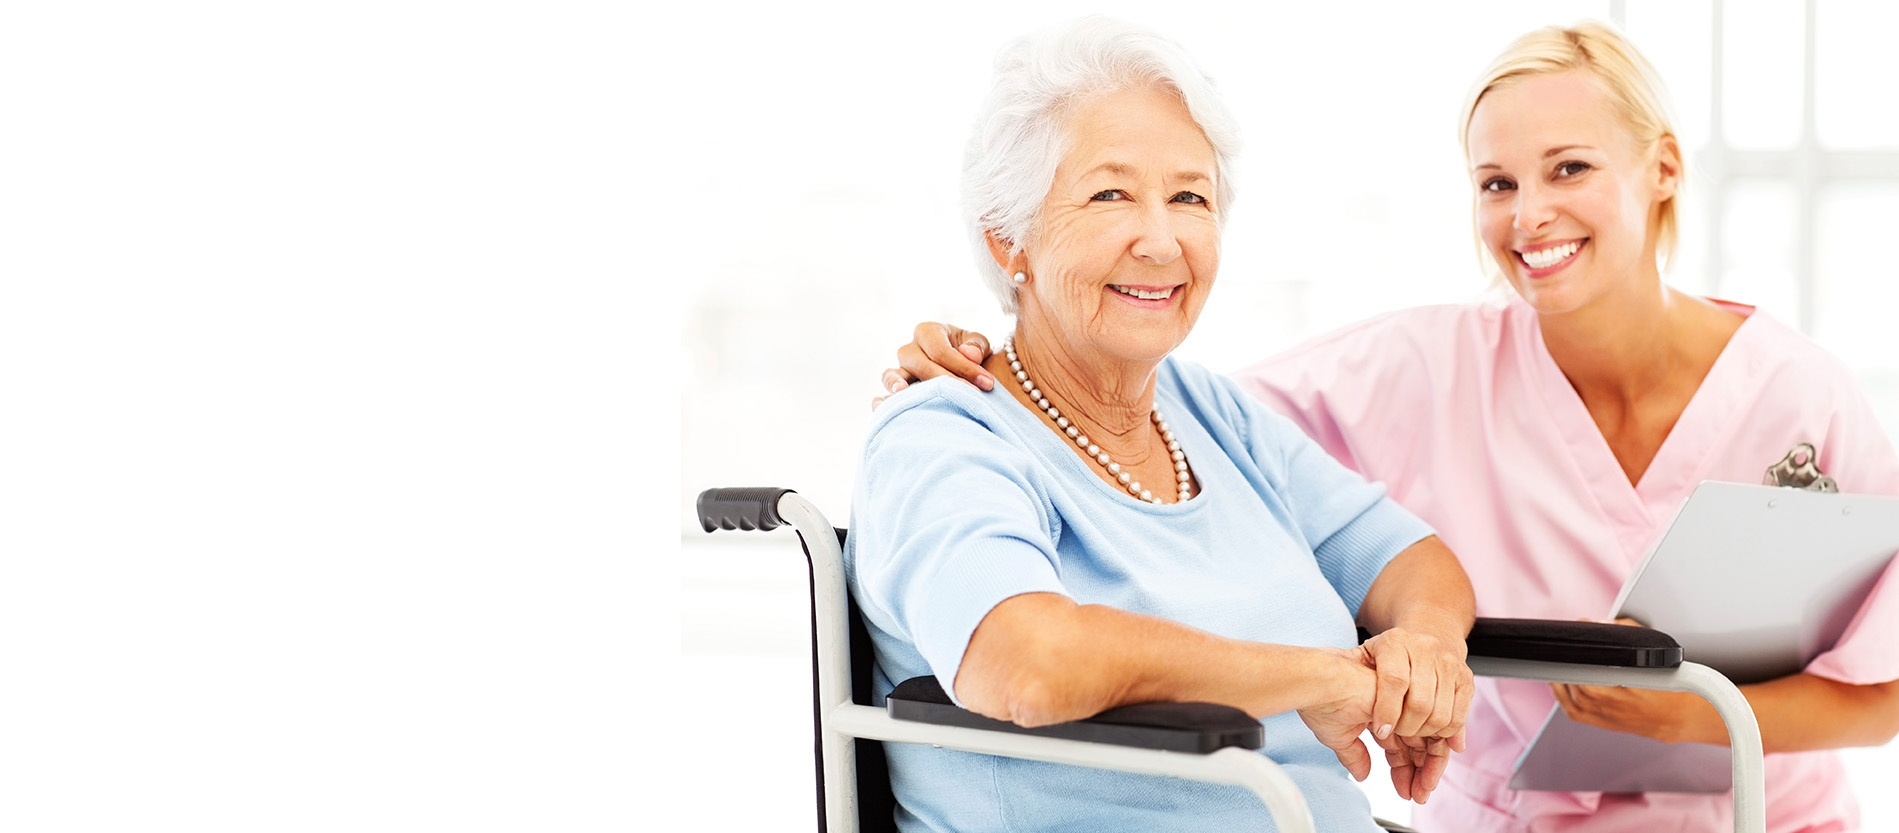 A smiling elderly woman with a smiling caregiver